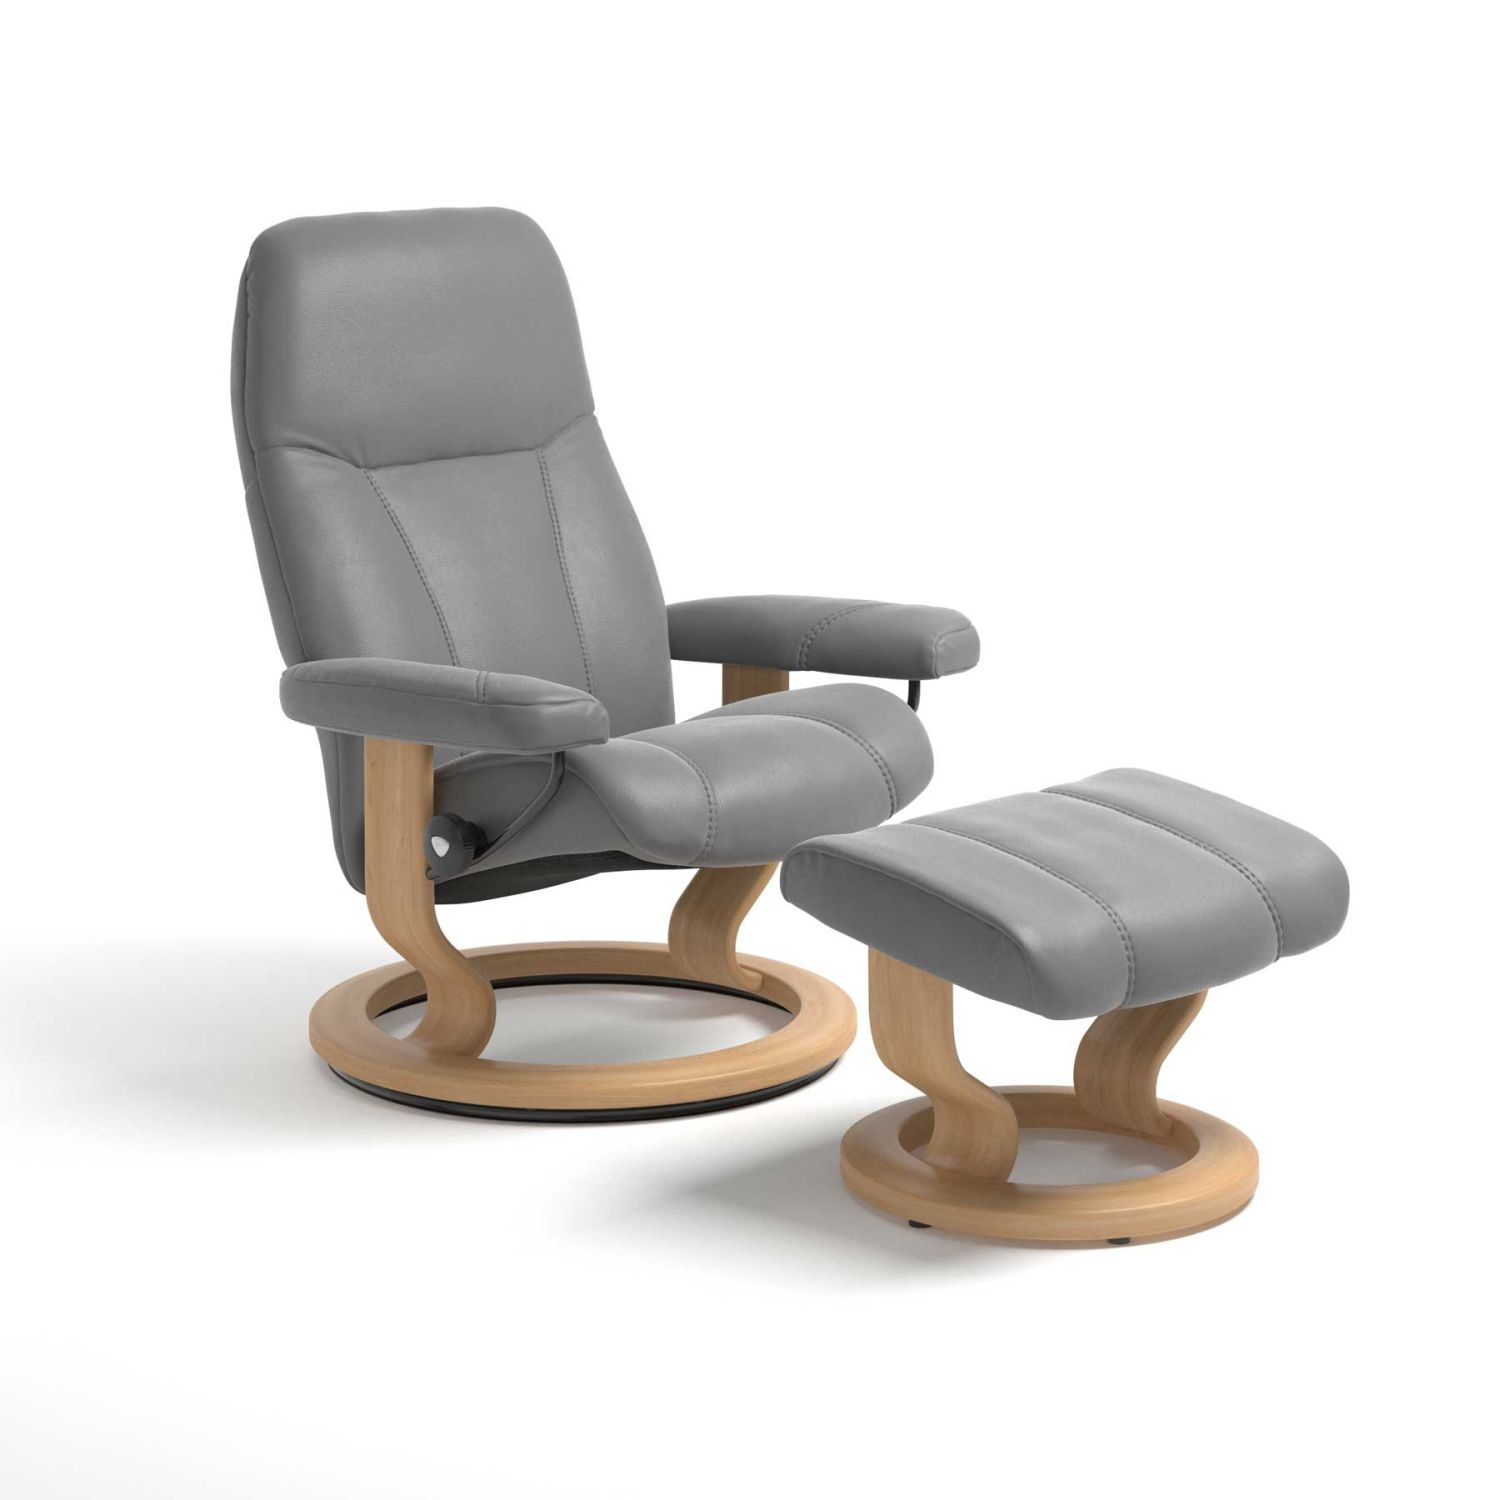 Image of Stressless Consul Large Chair & Stool